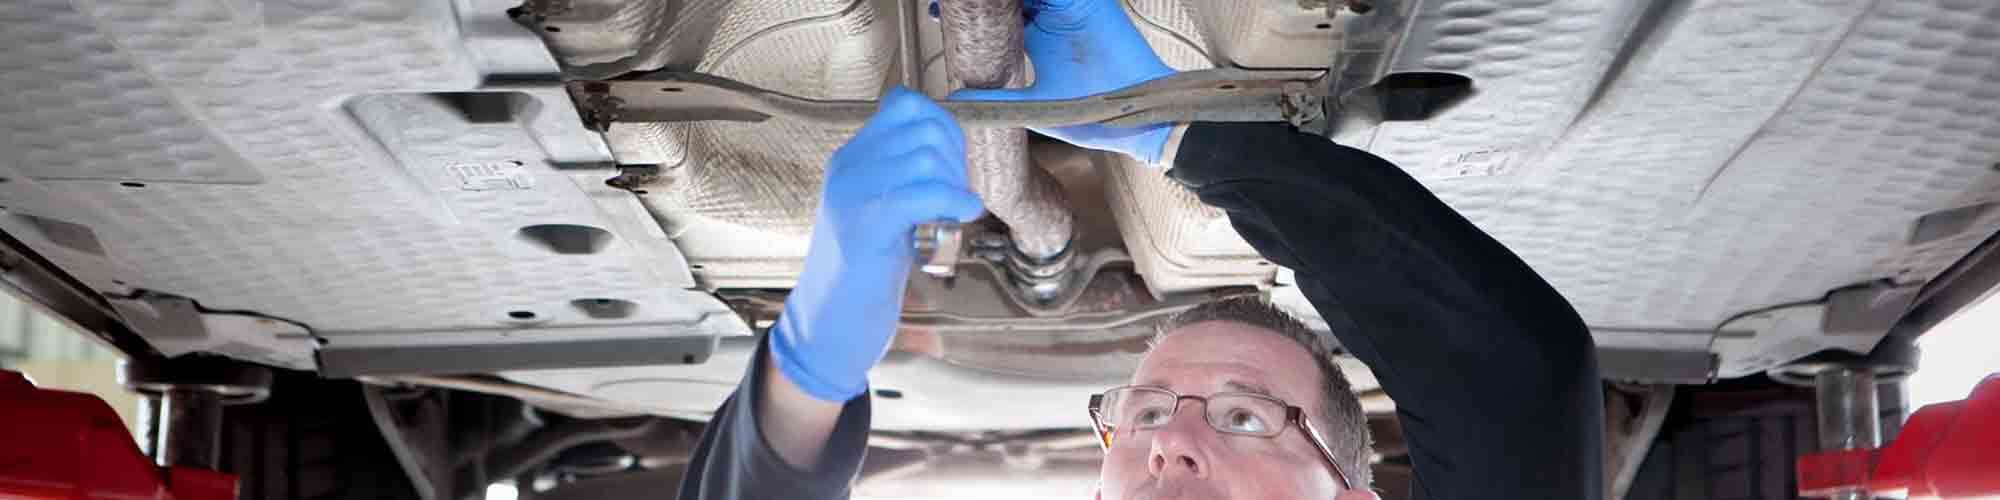 tyre and exhaust repairs